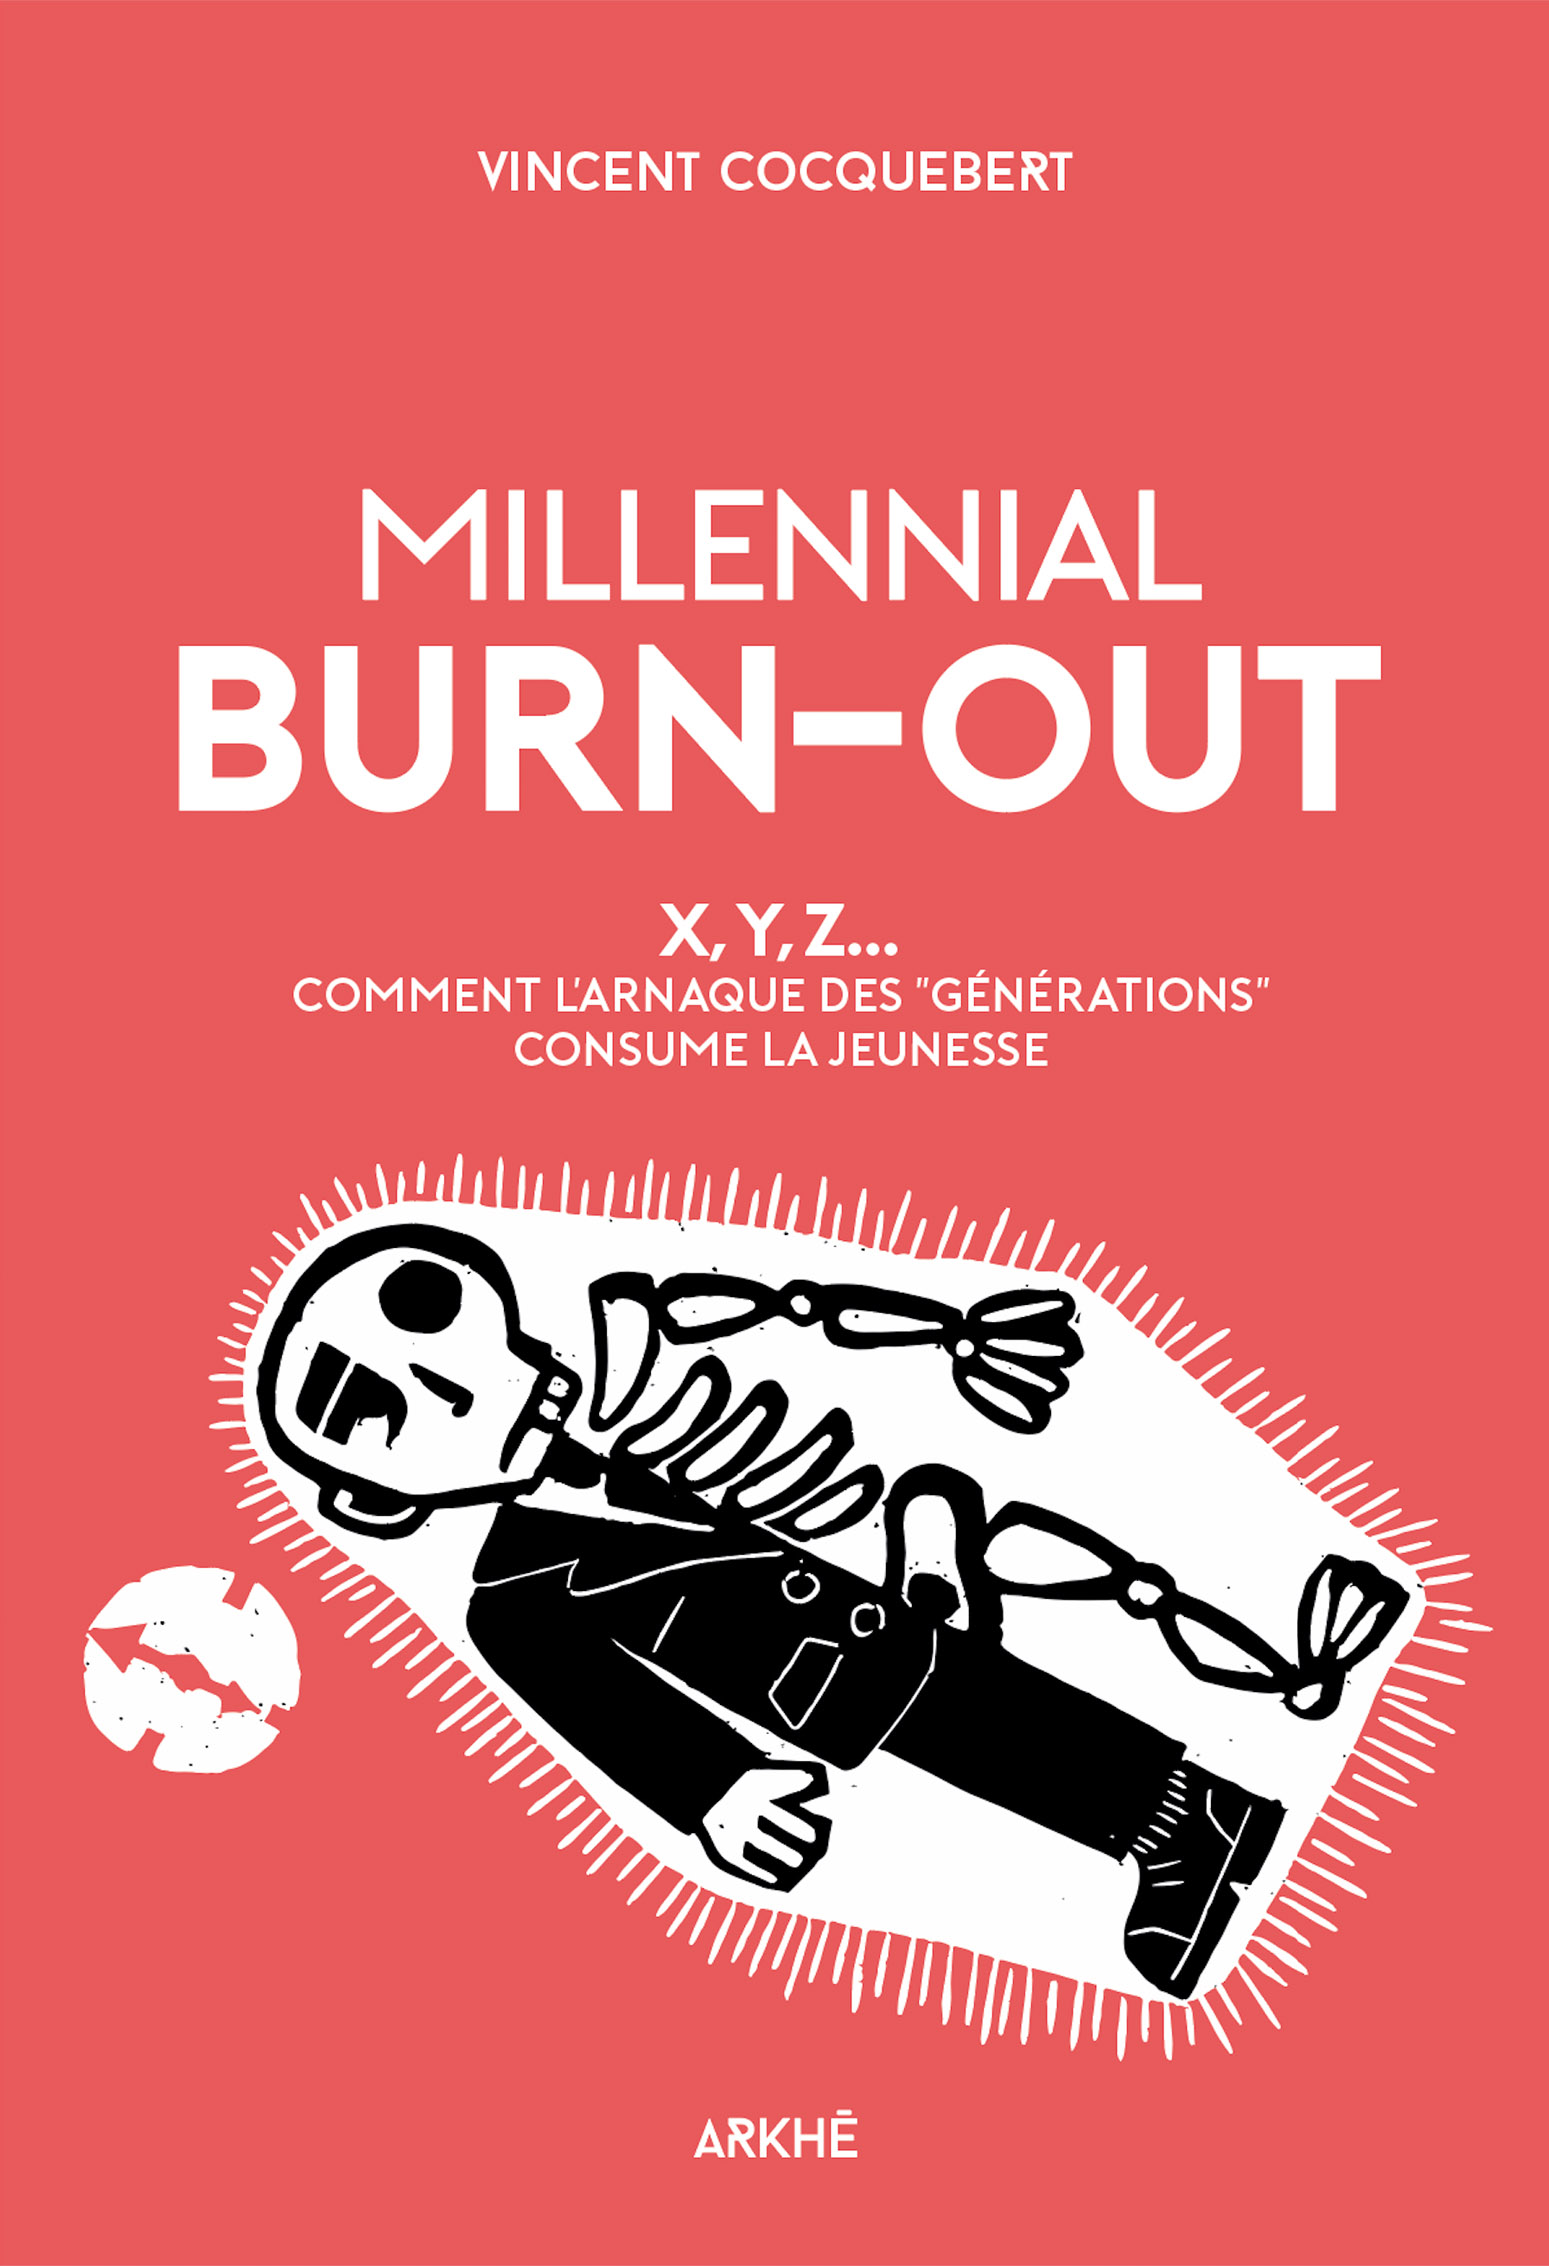 Millennial Burn-Out